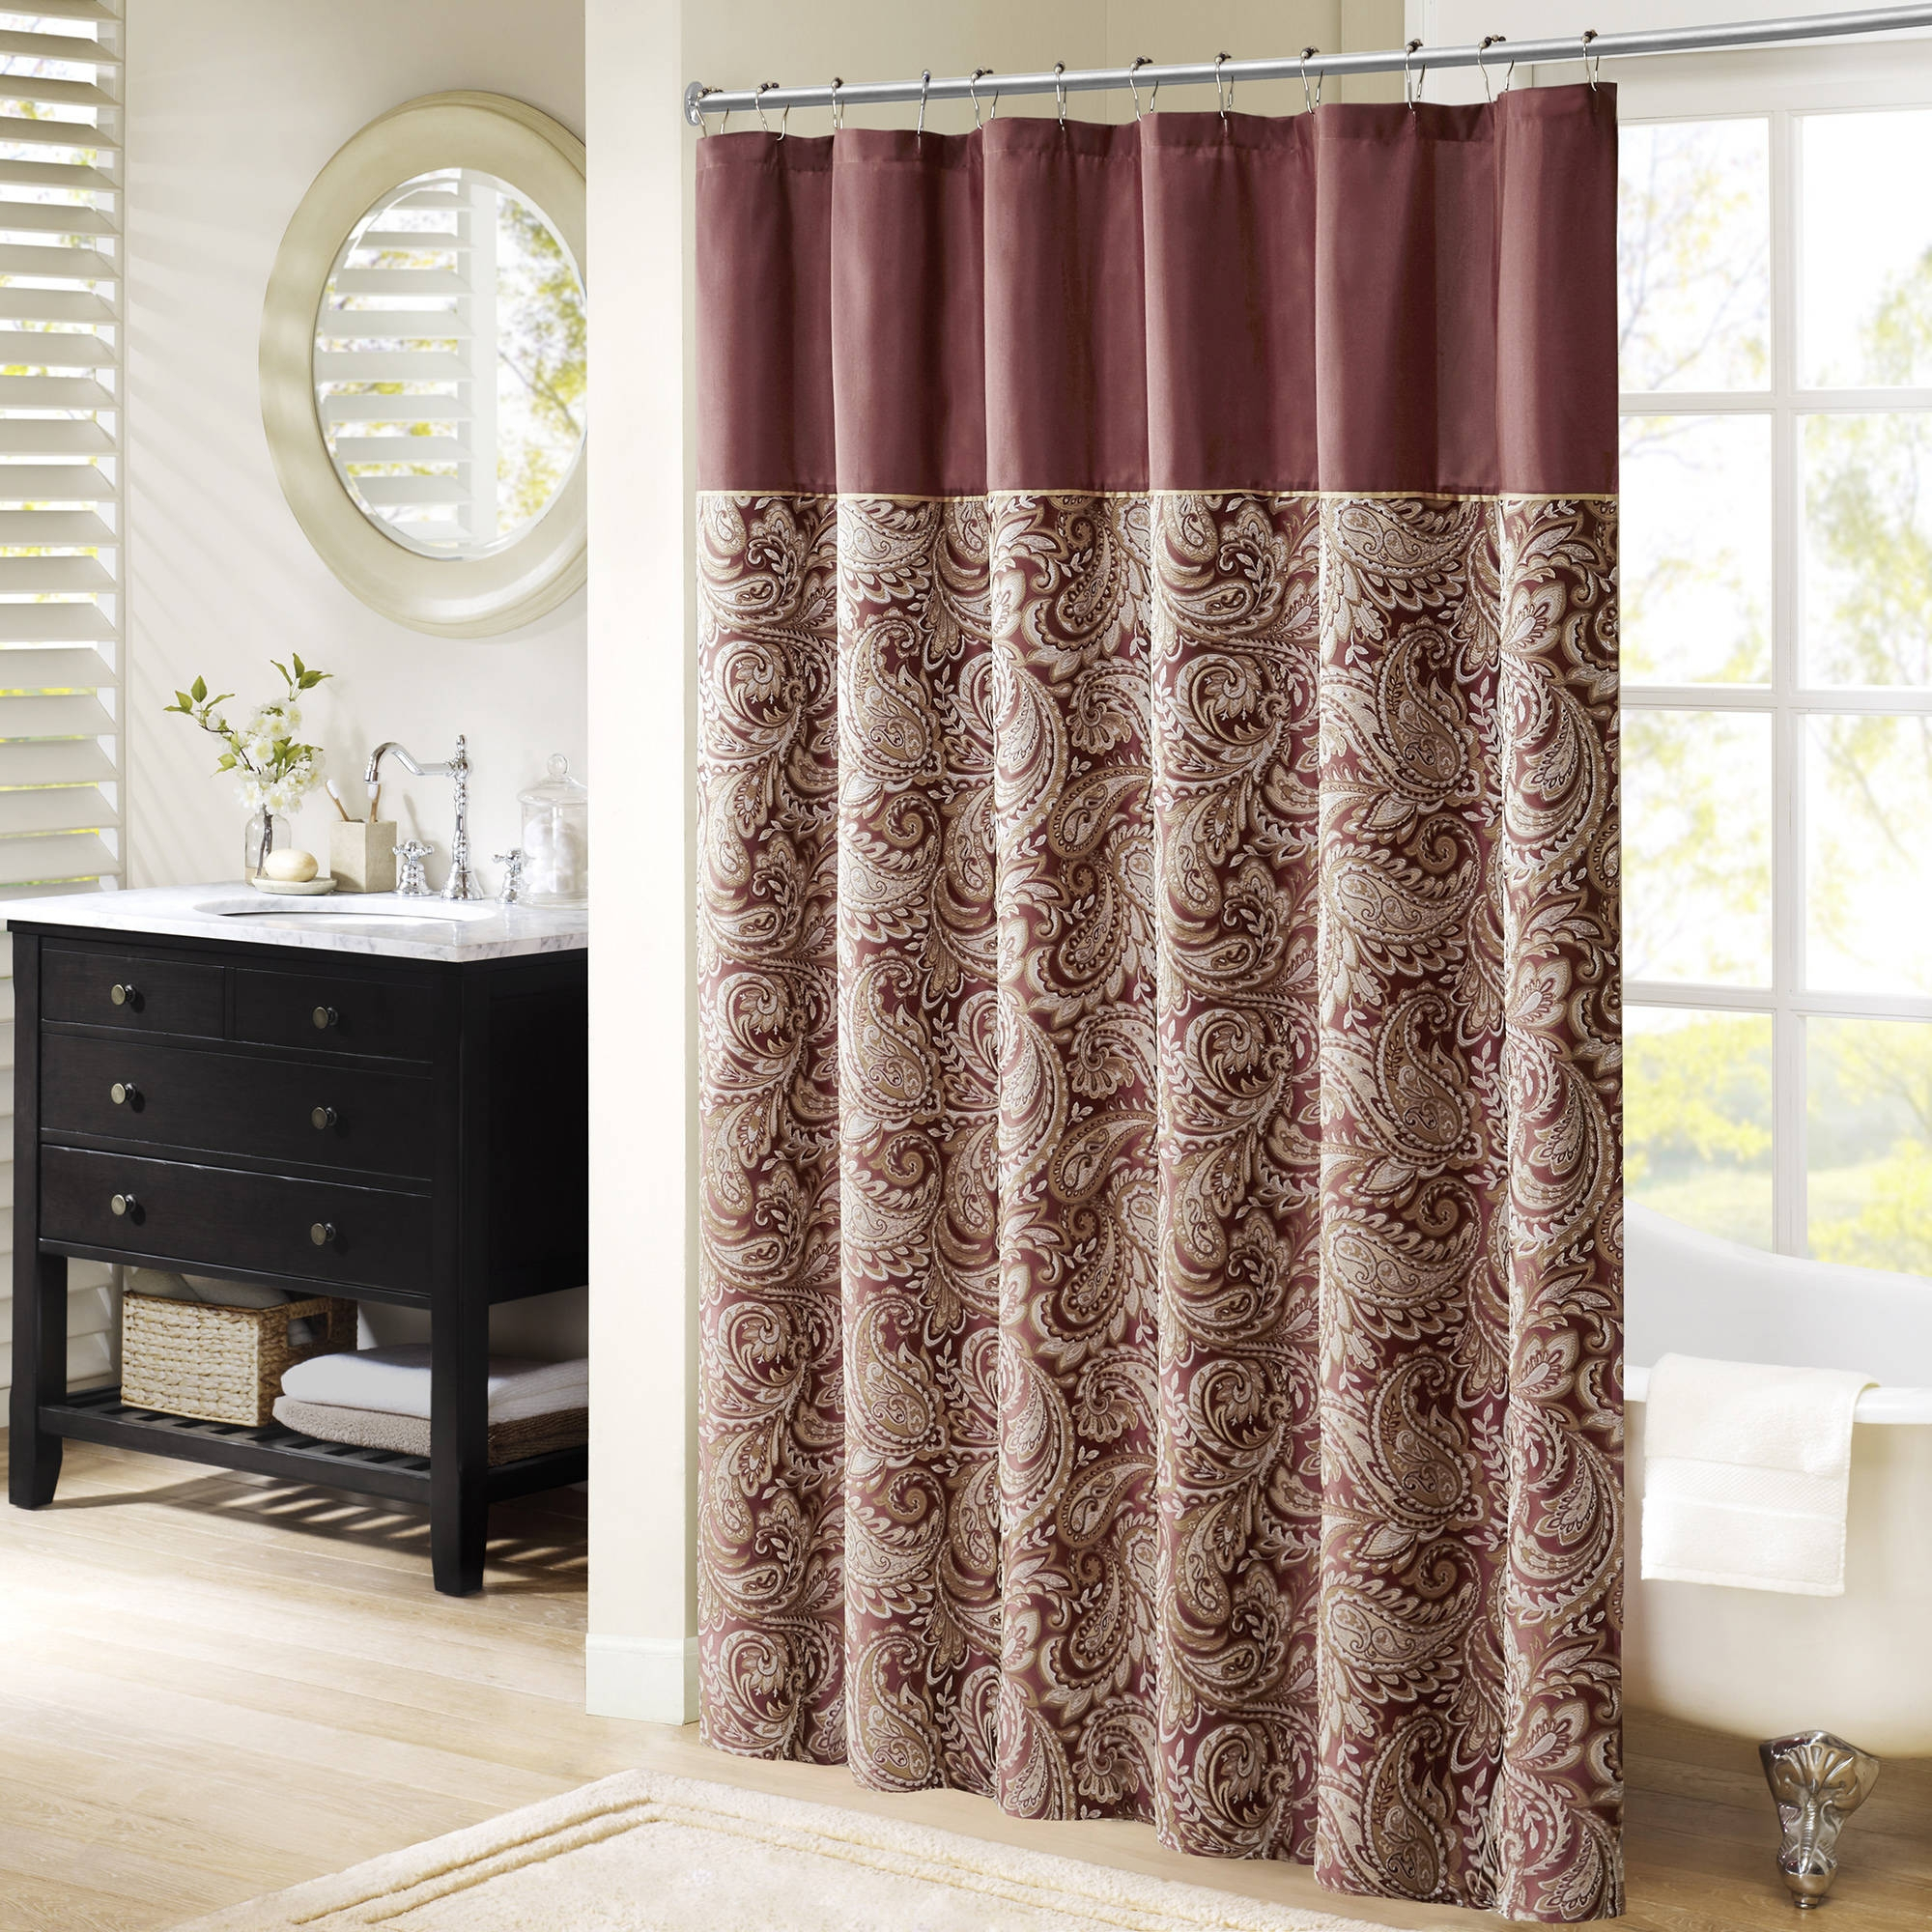 Outhouse Shower Curtain Rings • Shower Curtains Ideas